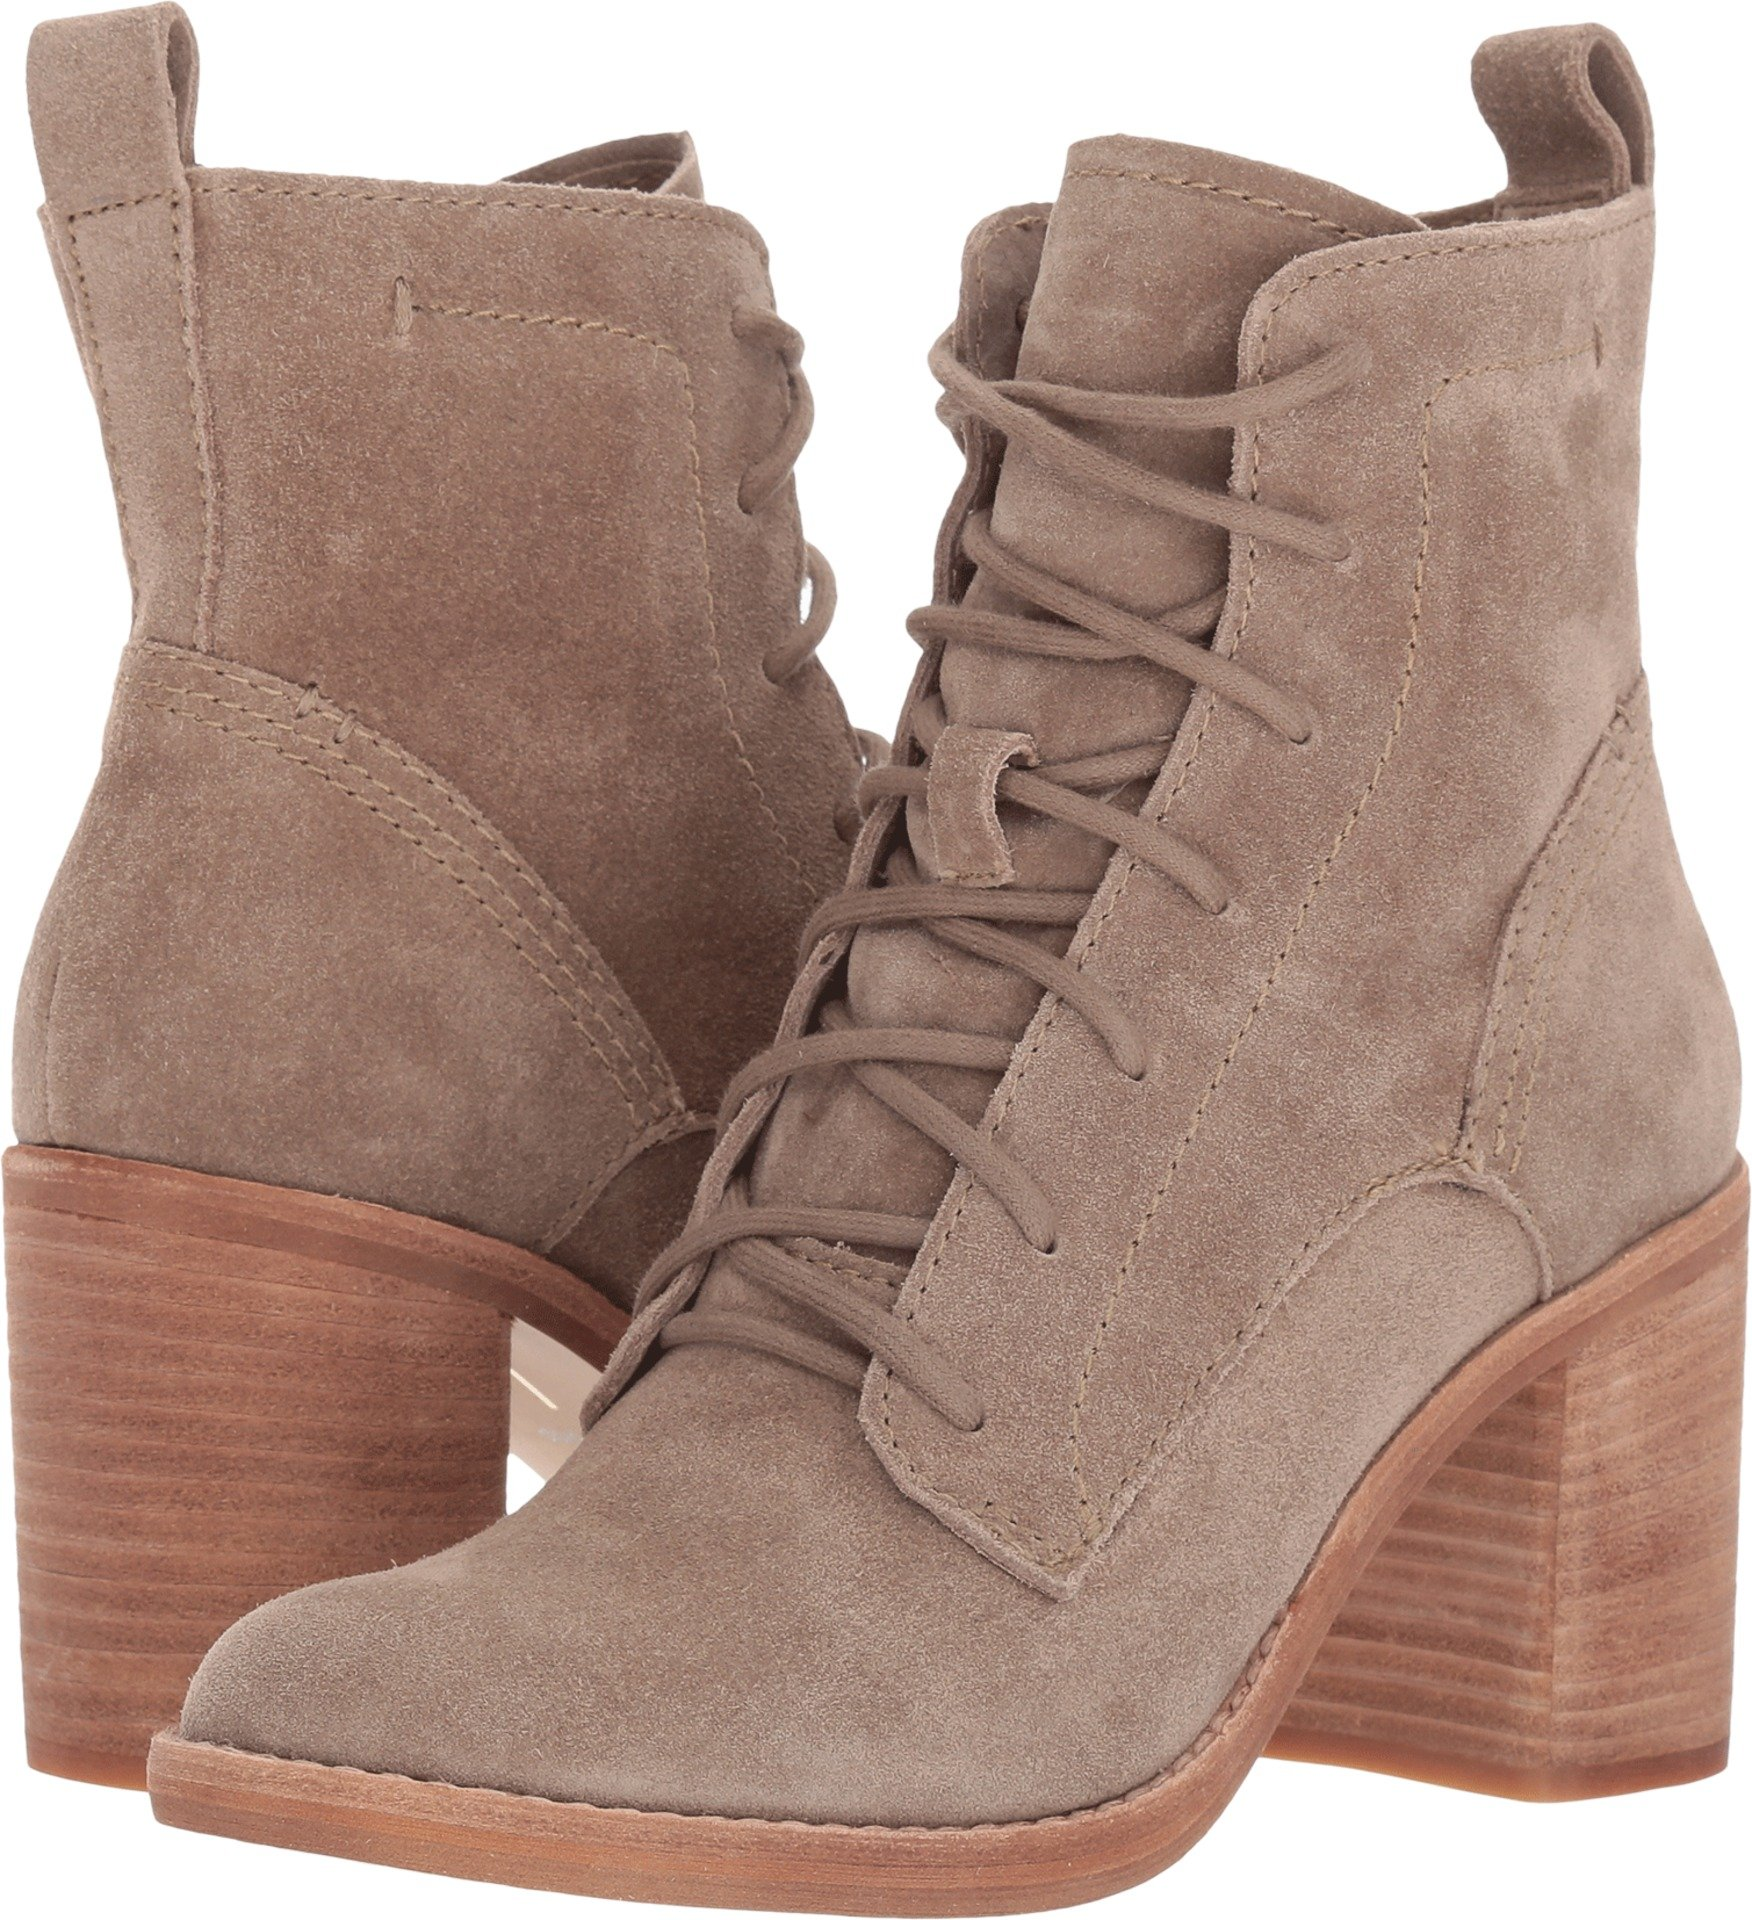 Dolce Vita Women's Rowly Fashion Boot, Dark Taupe Suede, 9.5 Medium US